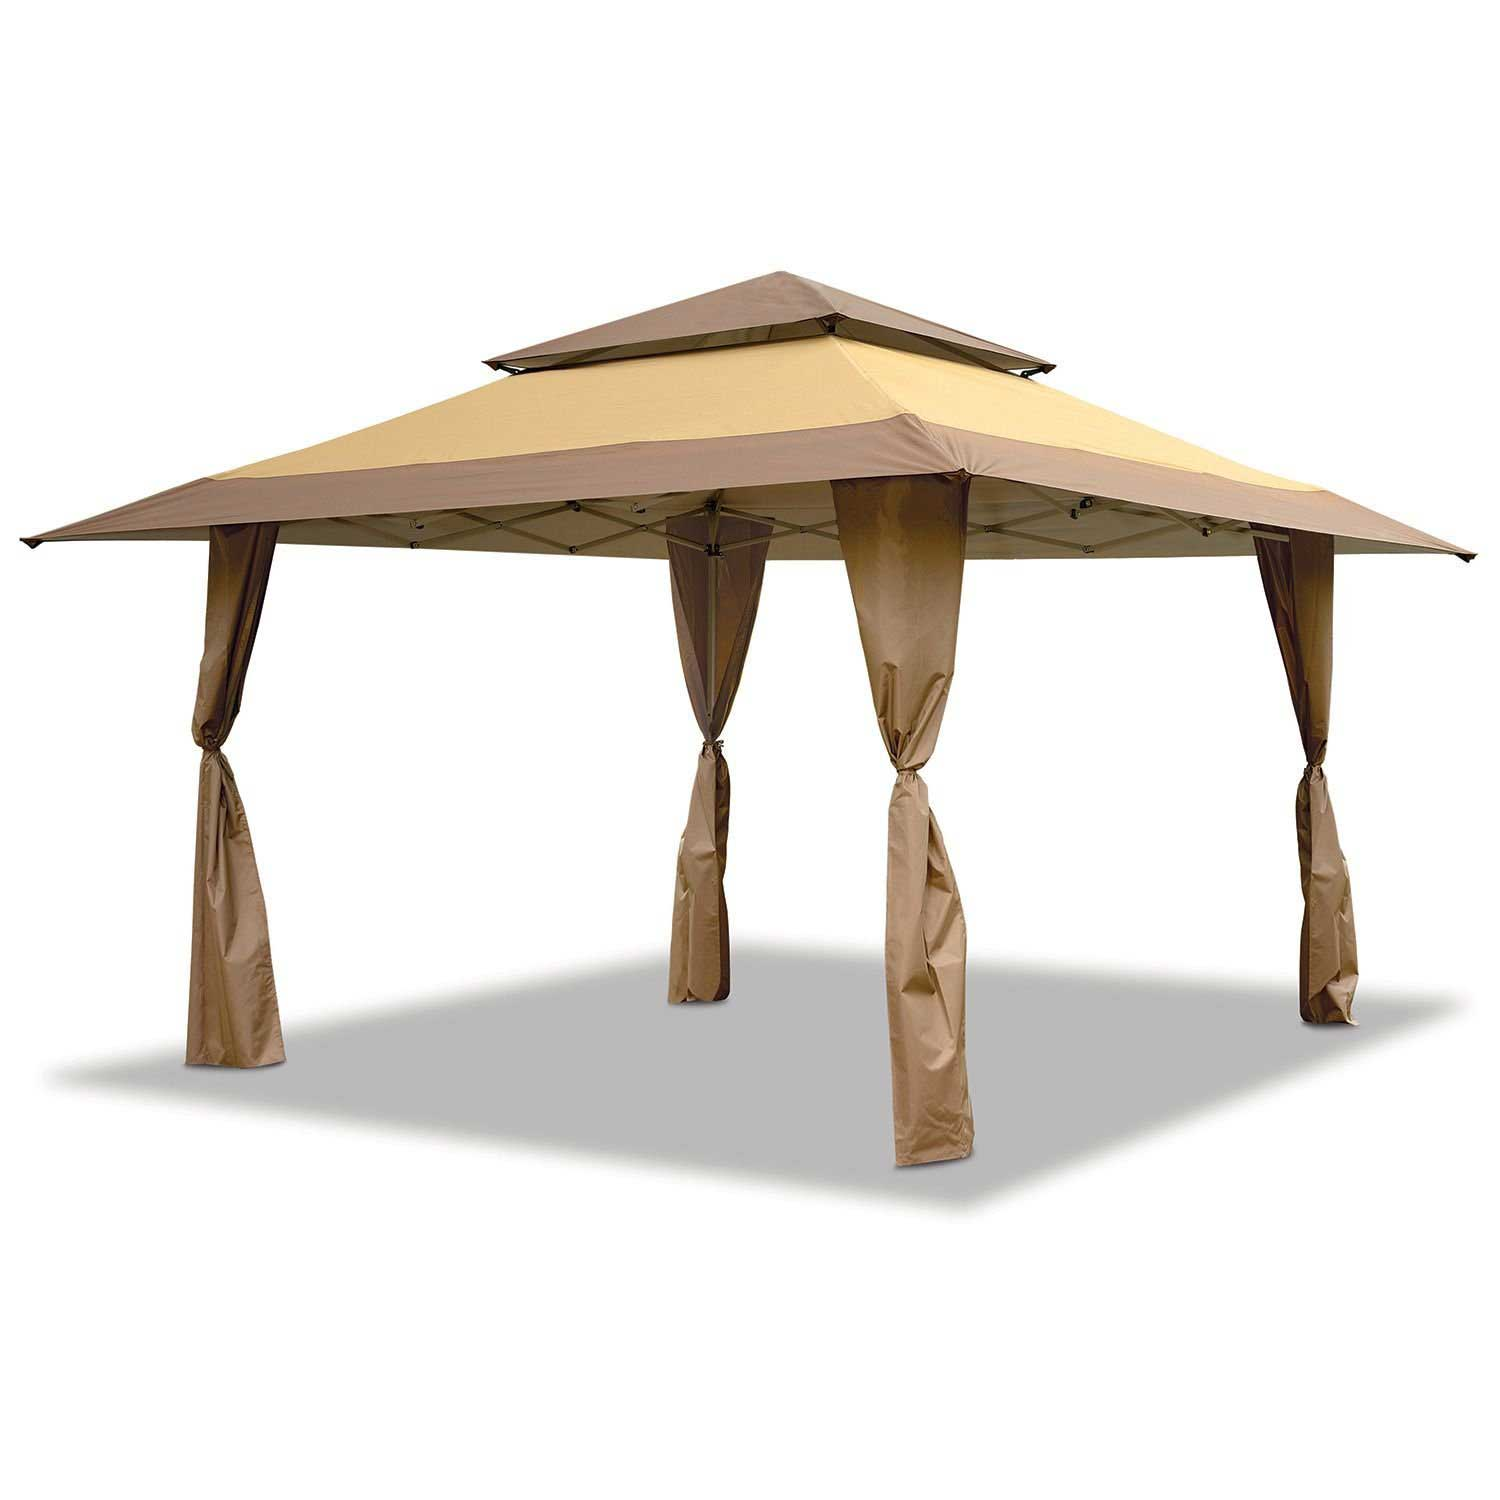 Z-Shade 13 x 13 Foot Instant Gazebo Canopy Tent Outdoor Patio Shelter, Tan Brown by Z-Shade